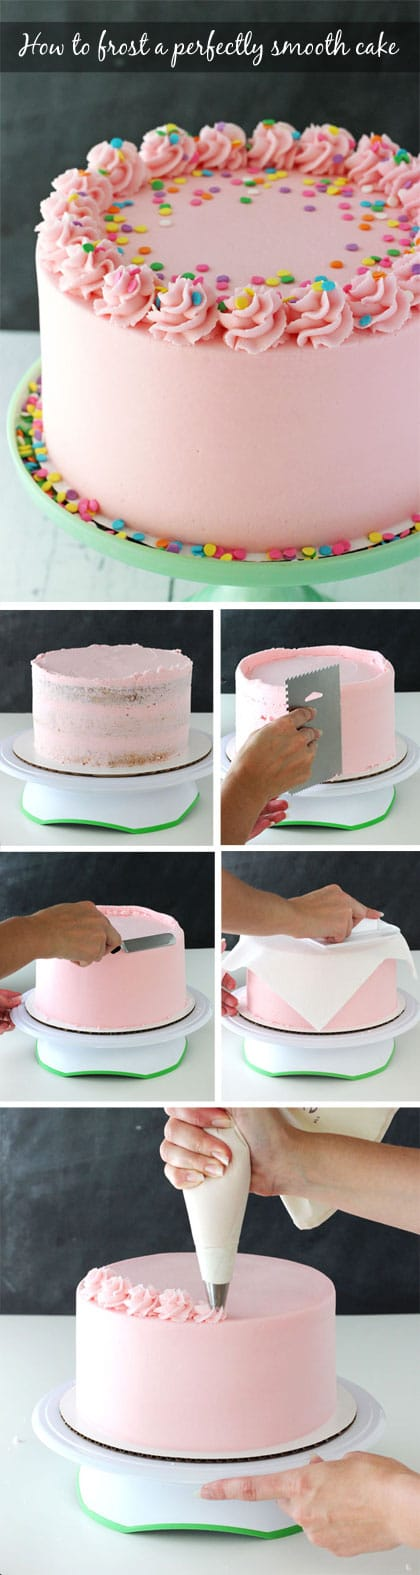 Tutorial - How to frost a perfectly smooth cake with buttercream icing! Images and animated gifs with detailed instructions!